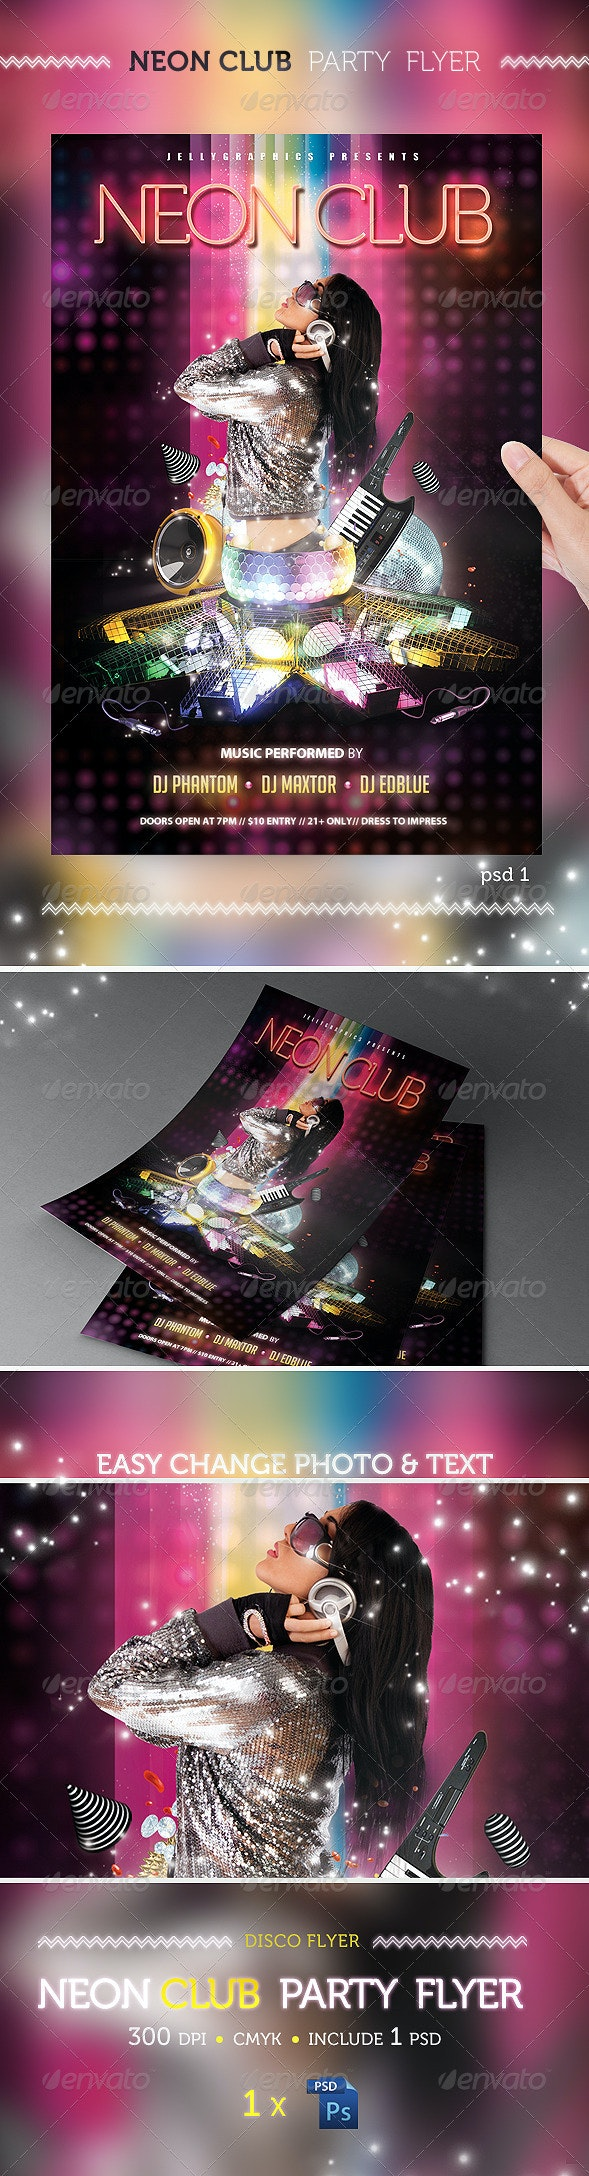 Neon Club Party Flyer Template - Clubs & Parties Events